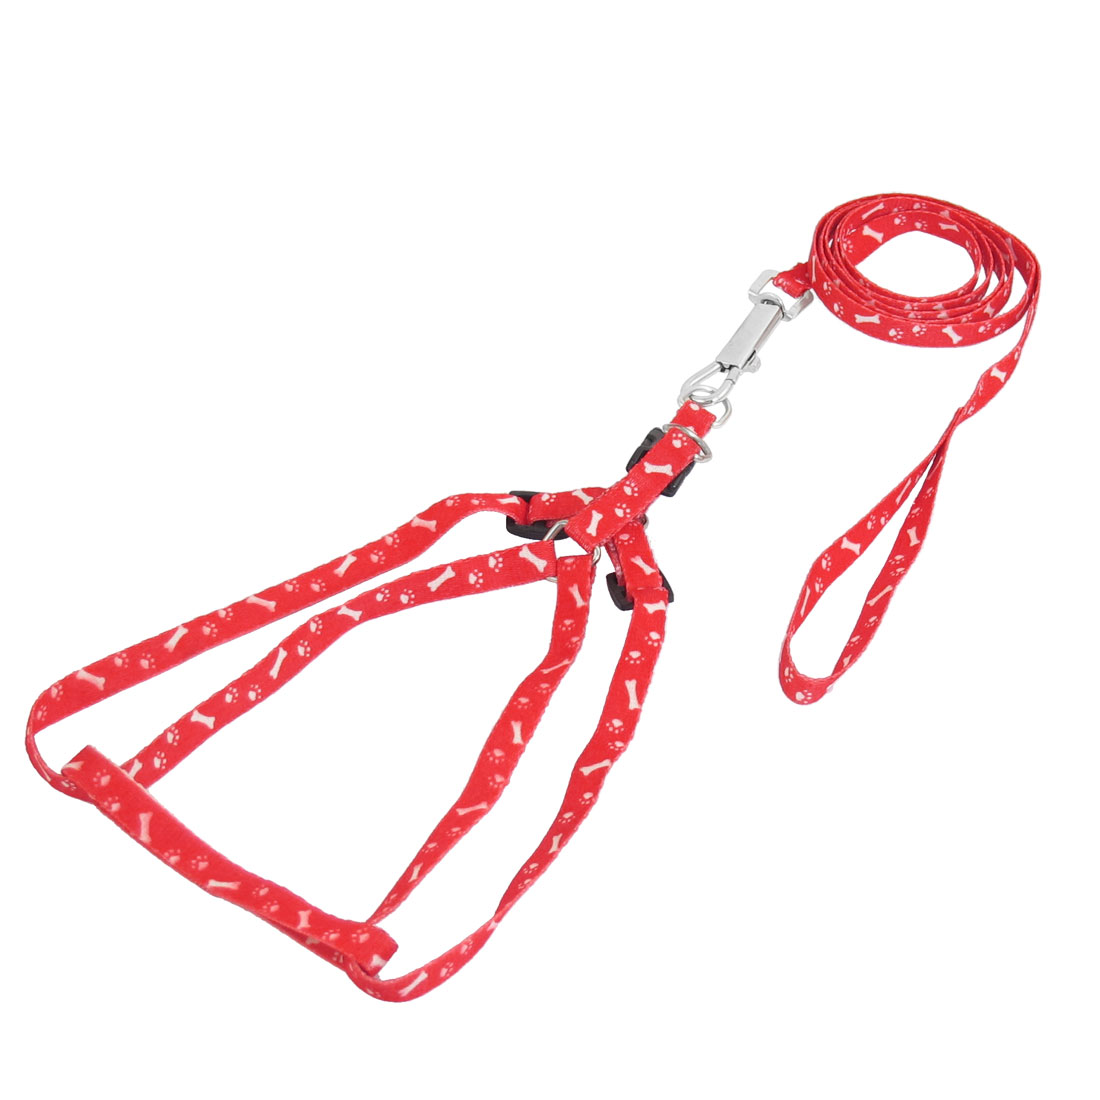 4.49ft Long Puppy Pet Nylon Rope Adjustable Dog Harness Leash Collar Red